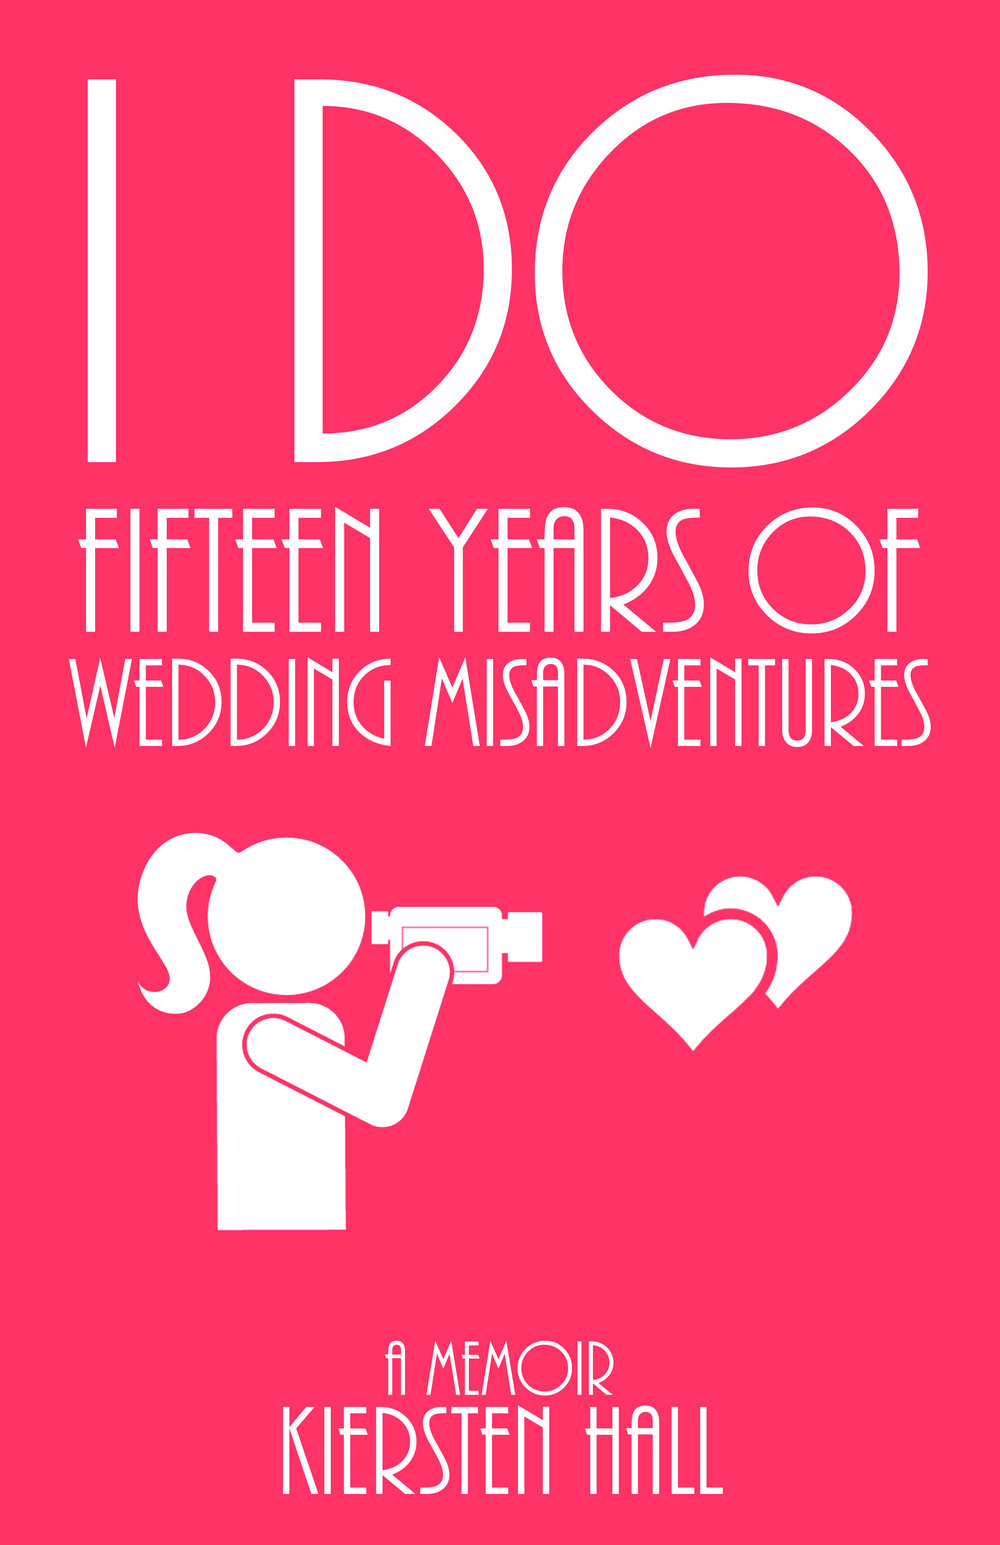 """I Do"" Fifteen Years of Wedding Misadventures     Amazon Review:  'It's just an awesome page-turner. If you're getting married, you definitely need to buy ""I Do"". If you're not getting married/already have gotten married and you're looking for some good laughs, ""I Do"" is totally worth it. Kiersten's style of writing is just really refreshing and makes funny stories even funnier – crisp, satirical prose elegantly put together. She takes years of great stories and boils them down to the best ones for the reader to enjoy.'     Amazon Review:  'I would have never thought that a wedding videographer would deal with so many different situations! While reading this book, I encountered some interesting information, some winces and cringes, some genuine laughs out loud – but I can honestly say that all of it was entertaining! In addition, Kiersten's casual, witty, and amusing writing style made me feel like I was sitting in her living room as she shared these scenarios and anecdotes with a group of friends. Thanks for sharing!'    Kiersten Hall PO Box 623 Austin, MN 55912 khallbooks.com & khallbooks@gmail.com Copyright 2014-2018 by Kiersten Hall K Hall Books: 9780692791875 Amazon & CreateSpace ISBN-13: 9781512282283  All rights reserved, including the right of reproduction in whole or in part in any form. Excerpts from Wedding & Event Directory Windows on Weddings, Inc. Copyright 1999 & 2000 by Kiersten Farr, nee Hall All rights reserved, including the right of reproduction in whole or in part in any form. Between 1990 through 2006, I co-owned ""I Do"" Productions Wedding Videography. As a co-owner, I worked with the couples both pre and post-nuptial, as well as videotaped and edited the weddings. At the height of our successful years, ""I Do"" actually had three video crews going out on Saturdays. The stories within this book are of the weddings I personally worked with, including videotaped and/or edited. This book is a work of non-fiction. Full names have been withheld for privacy purposes. The experiences, impressions, and anecdote I relate remain substantially intact.    ""I Do"" Book Reading - Chatfield, MN Public Library February 25, 2016 CCTV Link"